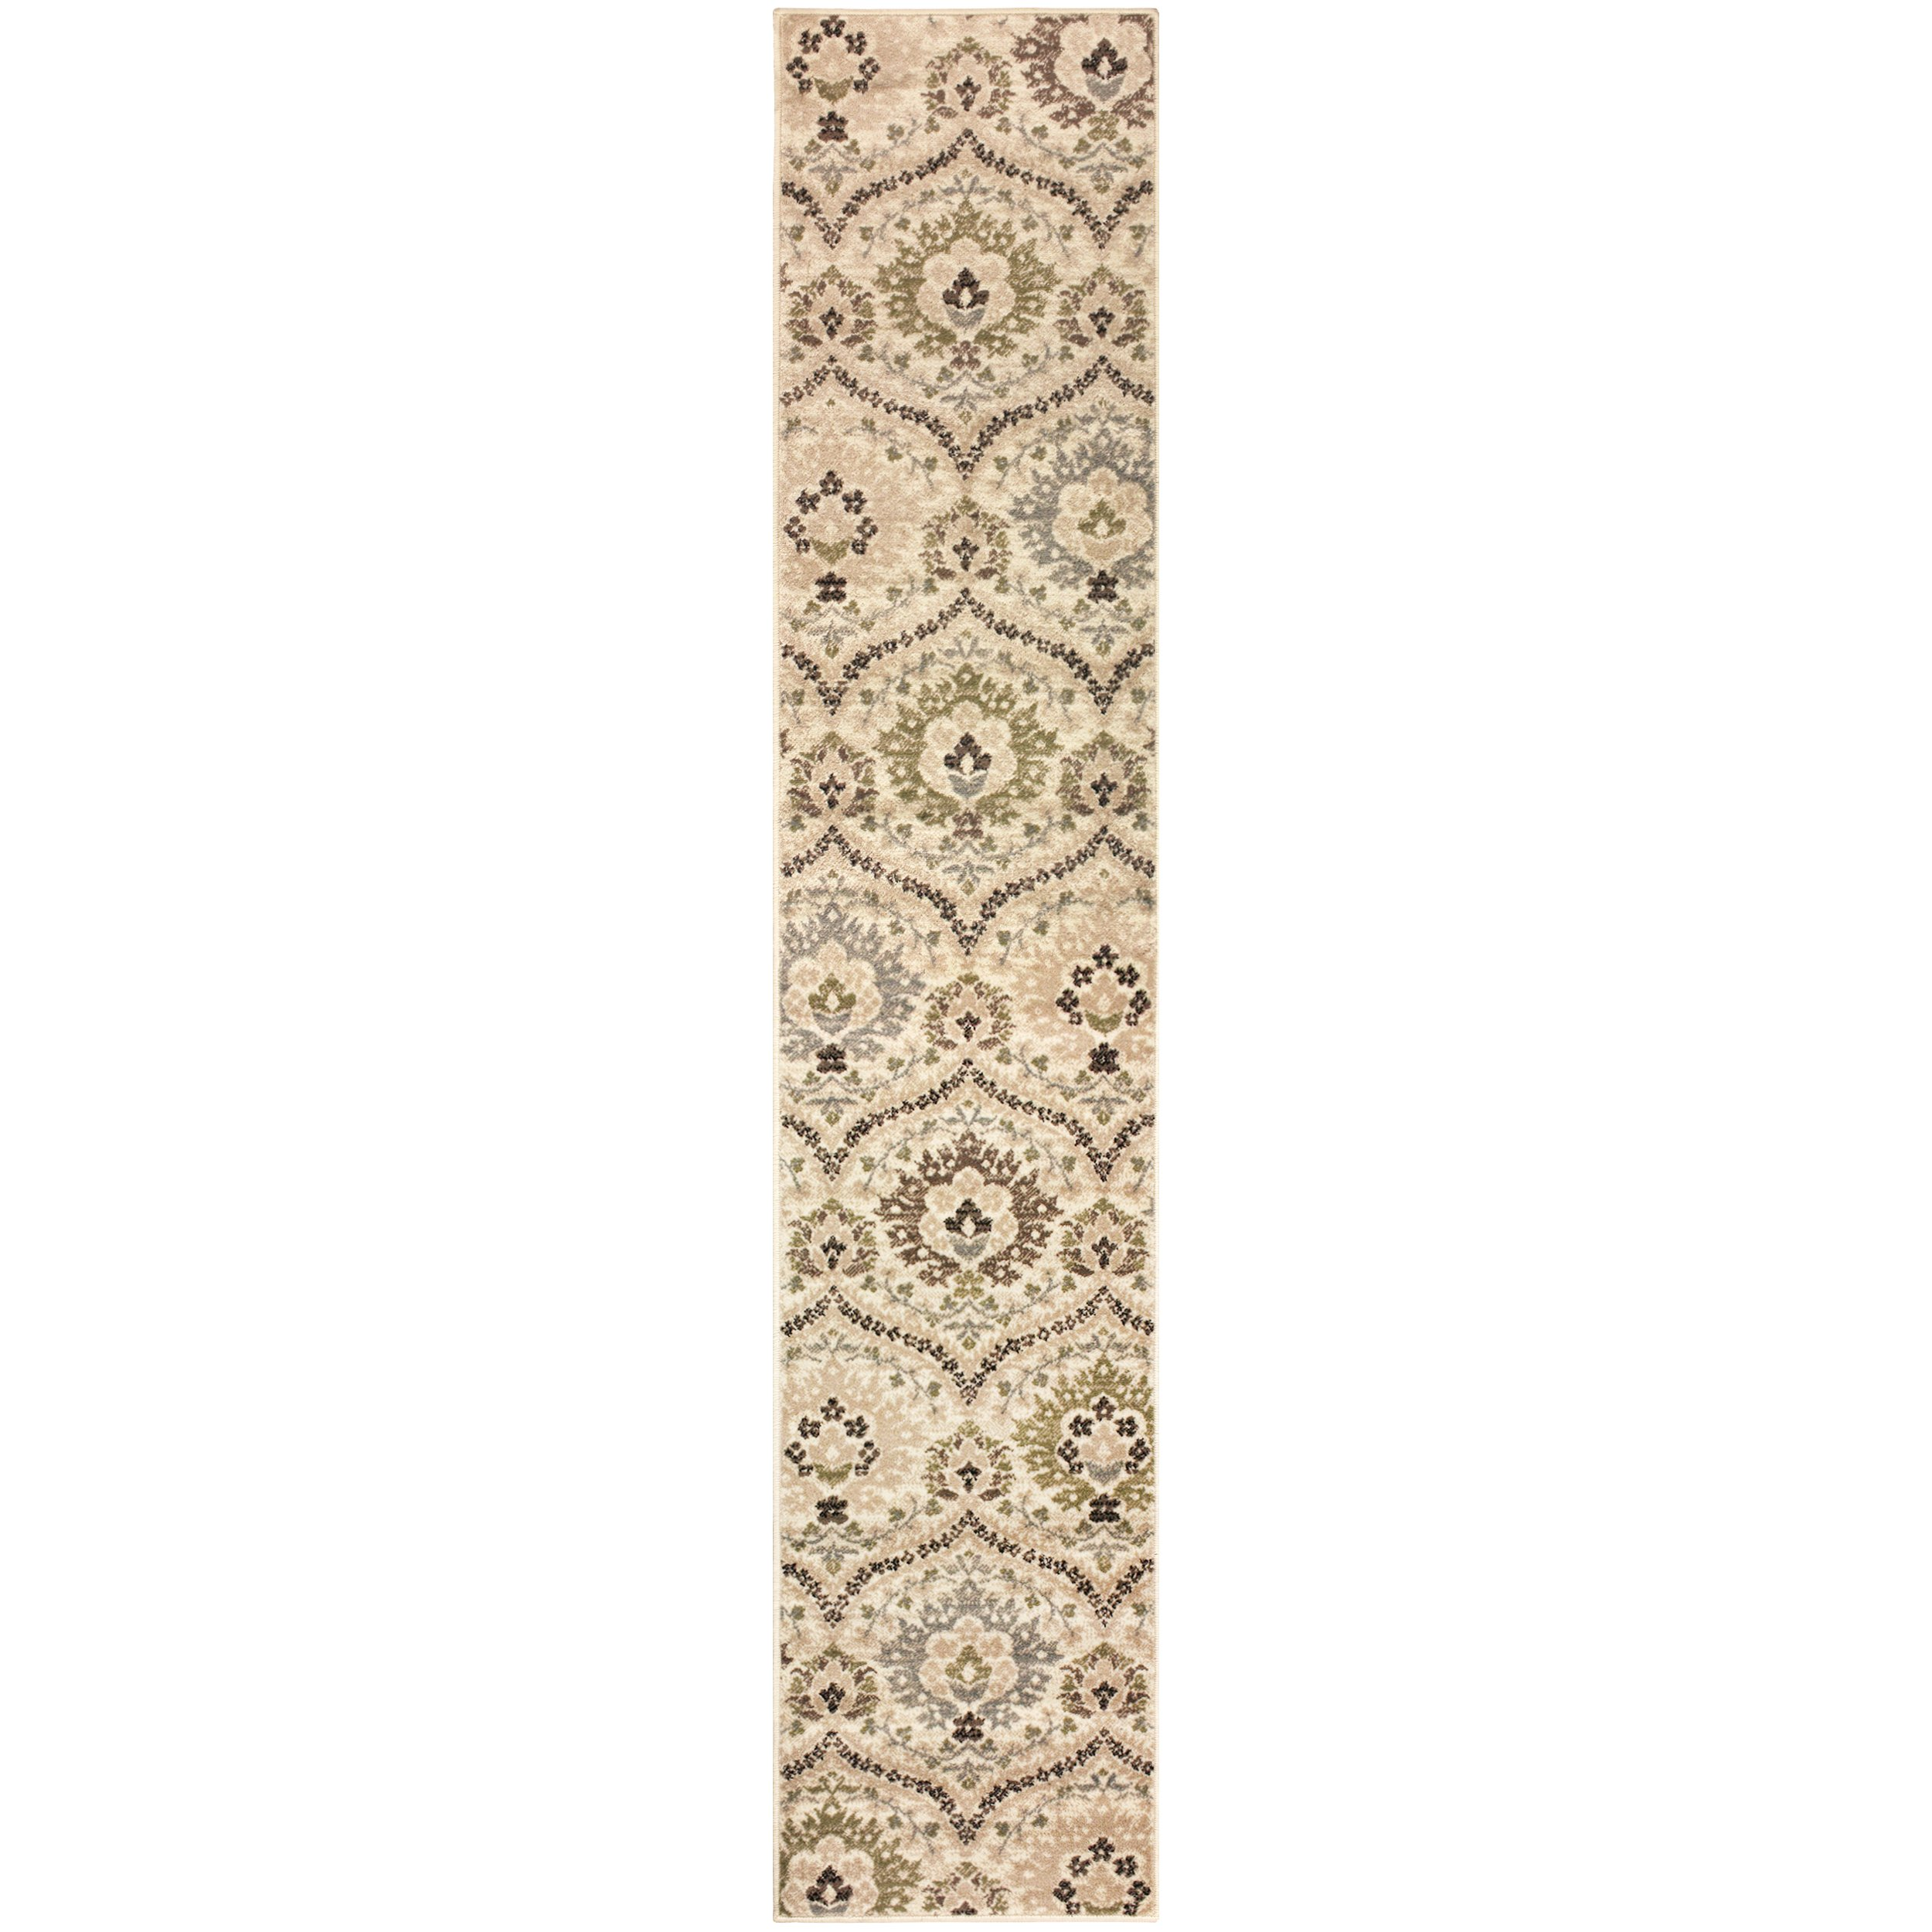 Superior Designer Augusta Collection Area Rug, 8mm Pile Height with Jute Backing, Beautiful Floral Scalloped Pattern, Anti-Static, Water-Repellent Rugs - Beige, 2' x 11' Runner